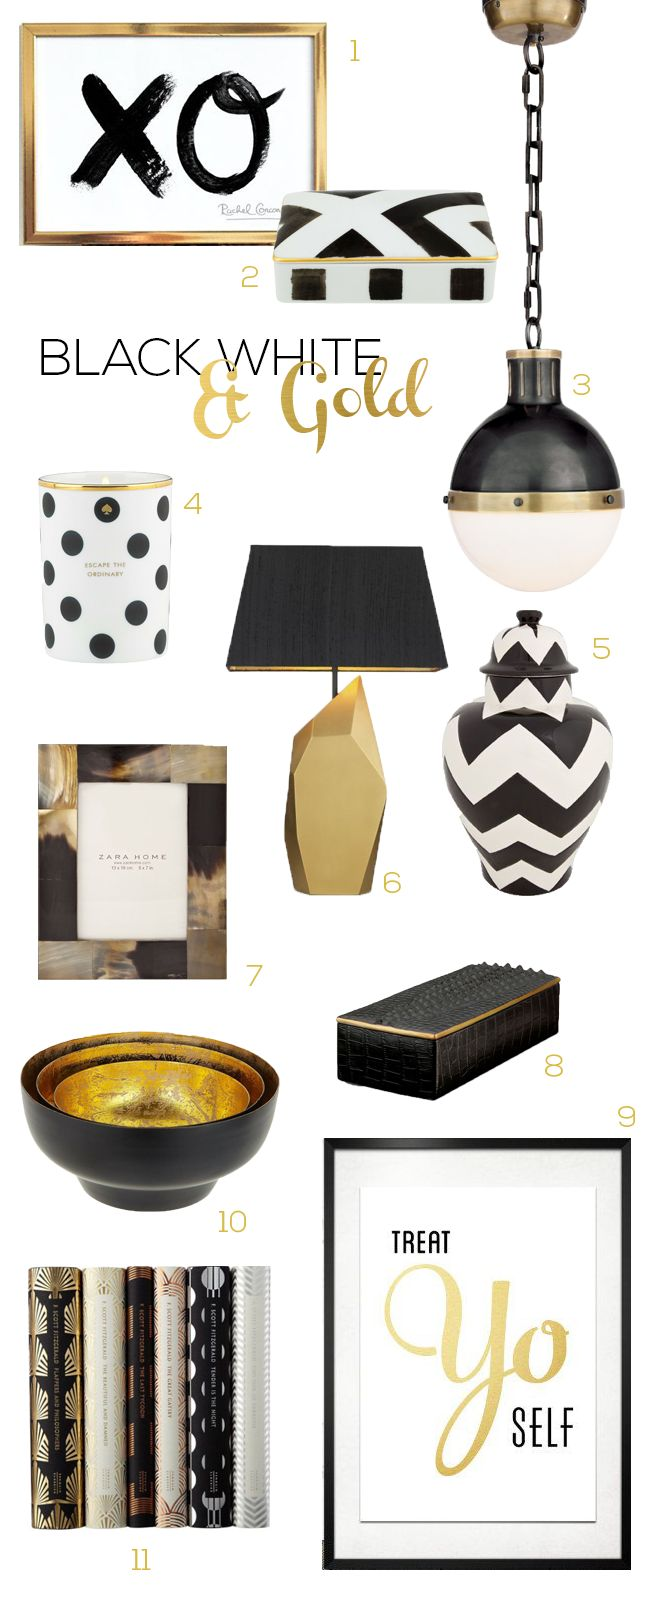 Black and gold bedroom - Buying Guide In Black White And Gold